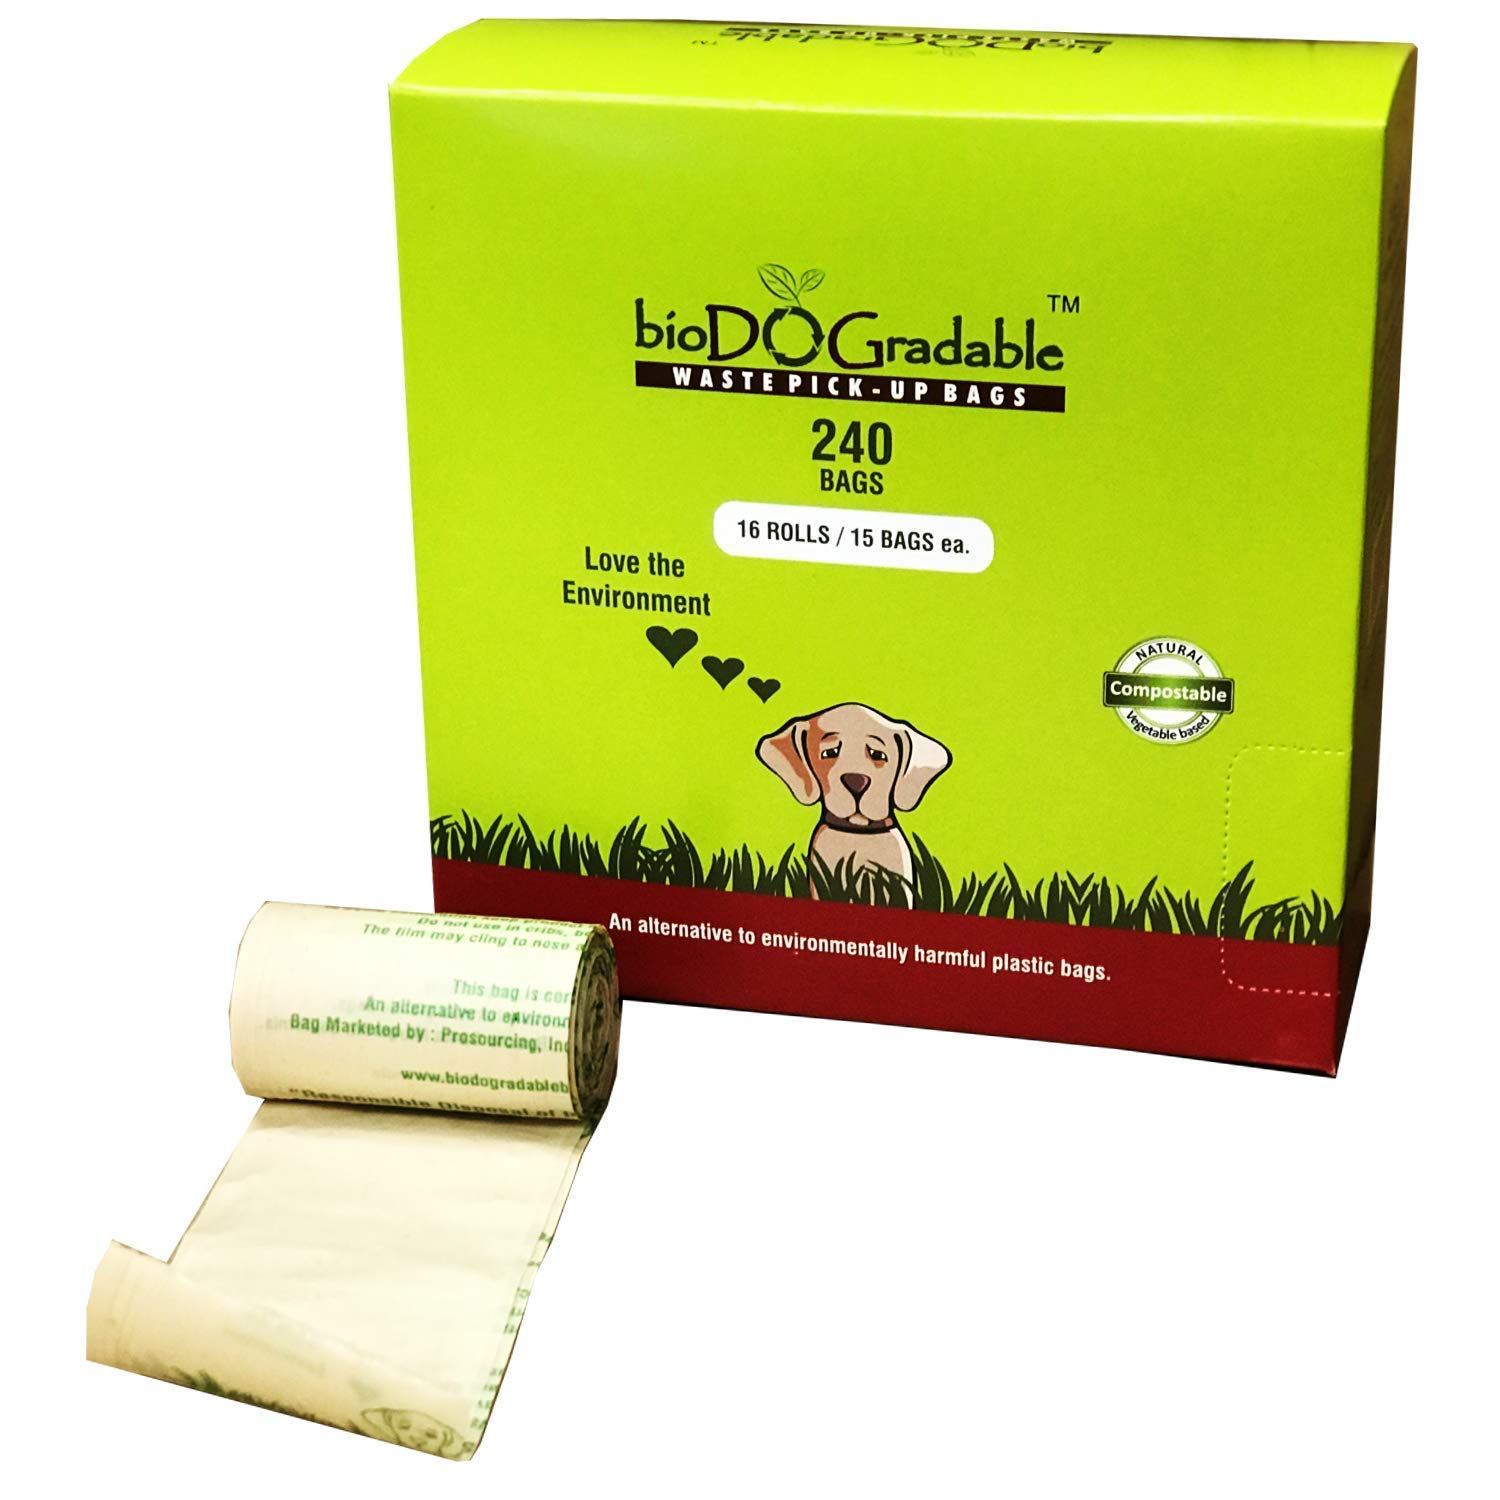 240 Dog Poop Waste Bags - Biodegradable Compostable Leak Proof and Tear Resistant - Vegetable Based Environmentally Friendly Pet Waste Bag - Plastic-Free - Holds Up to 4 Pounds by bioDOGradable WASTE PICK-UP BAGS